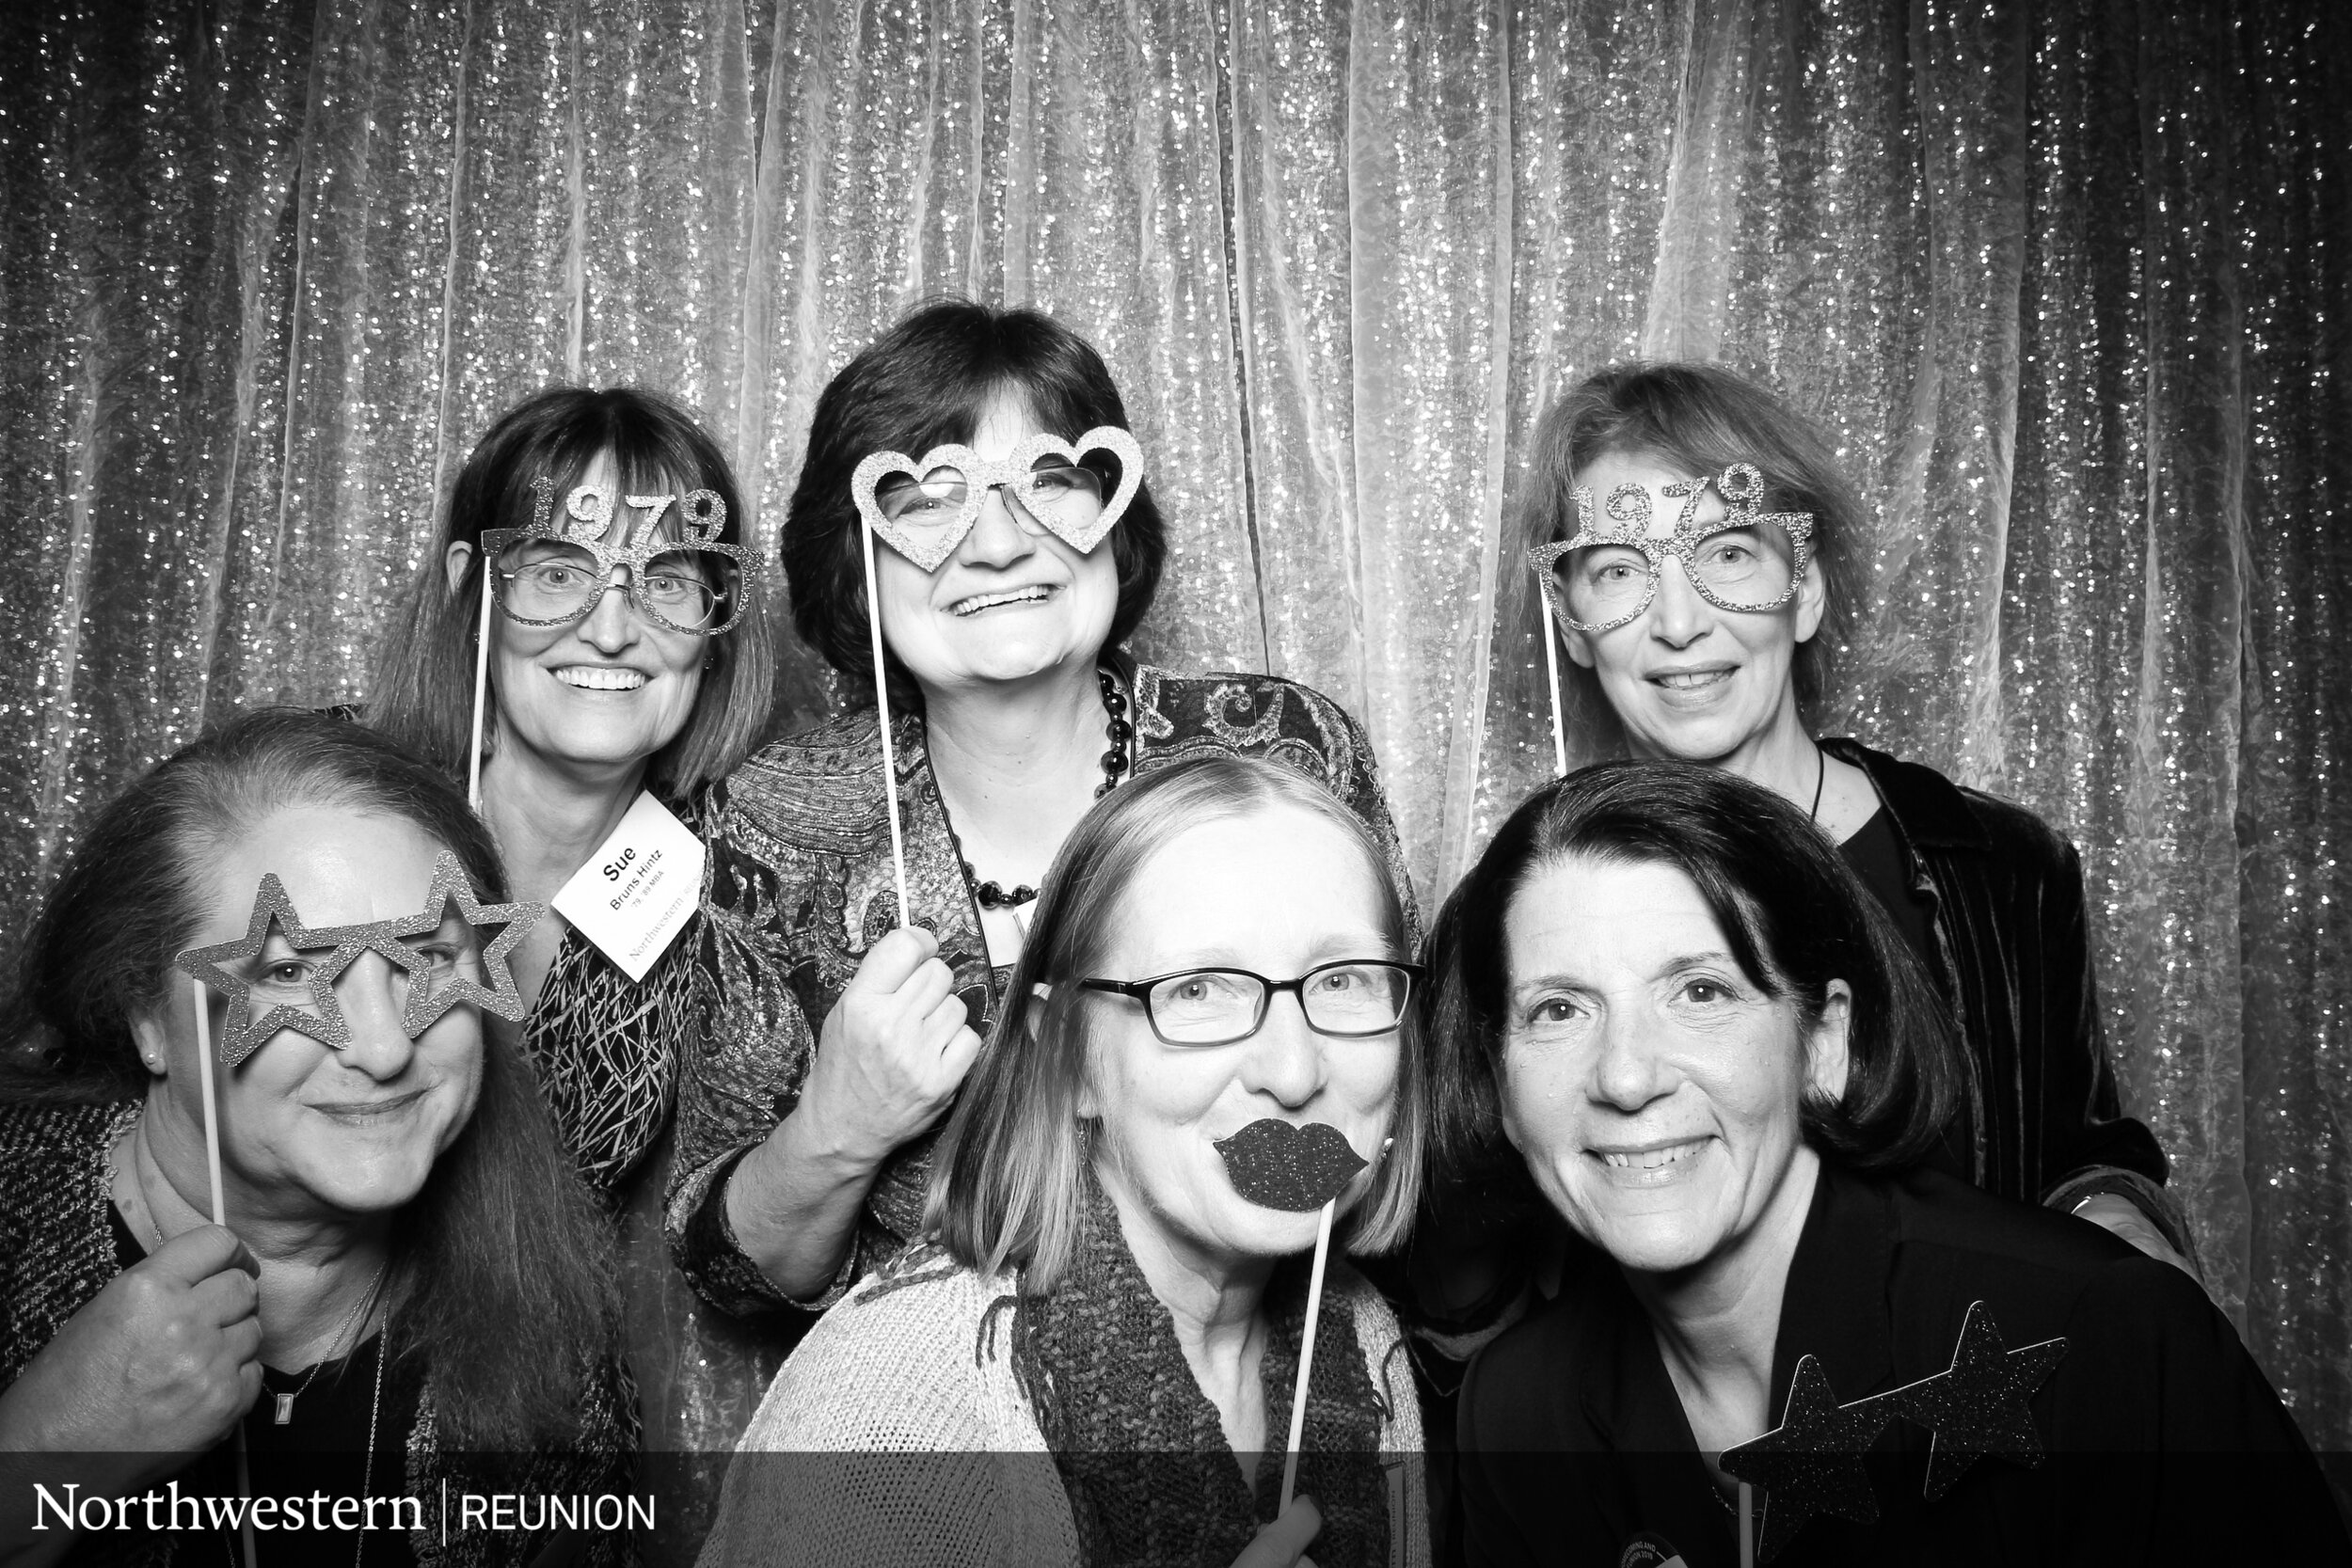 Class_Reunion_Photo_Booth_Chicago_04.jpg